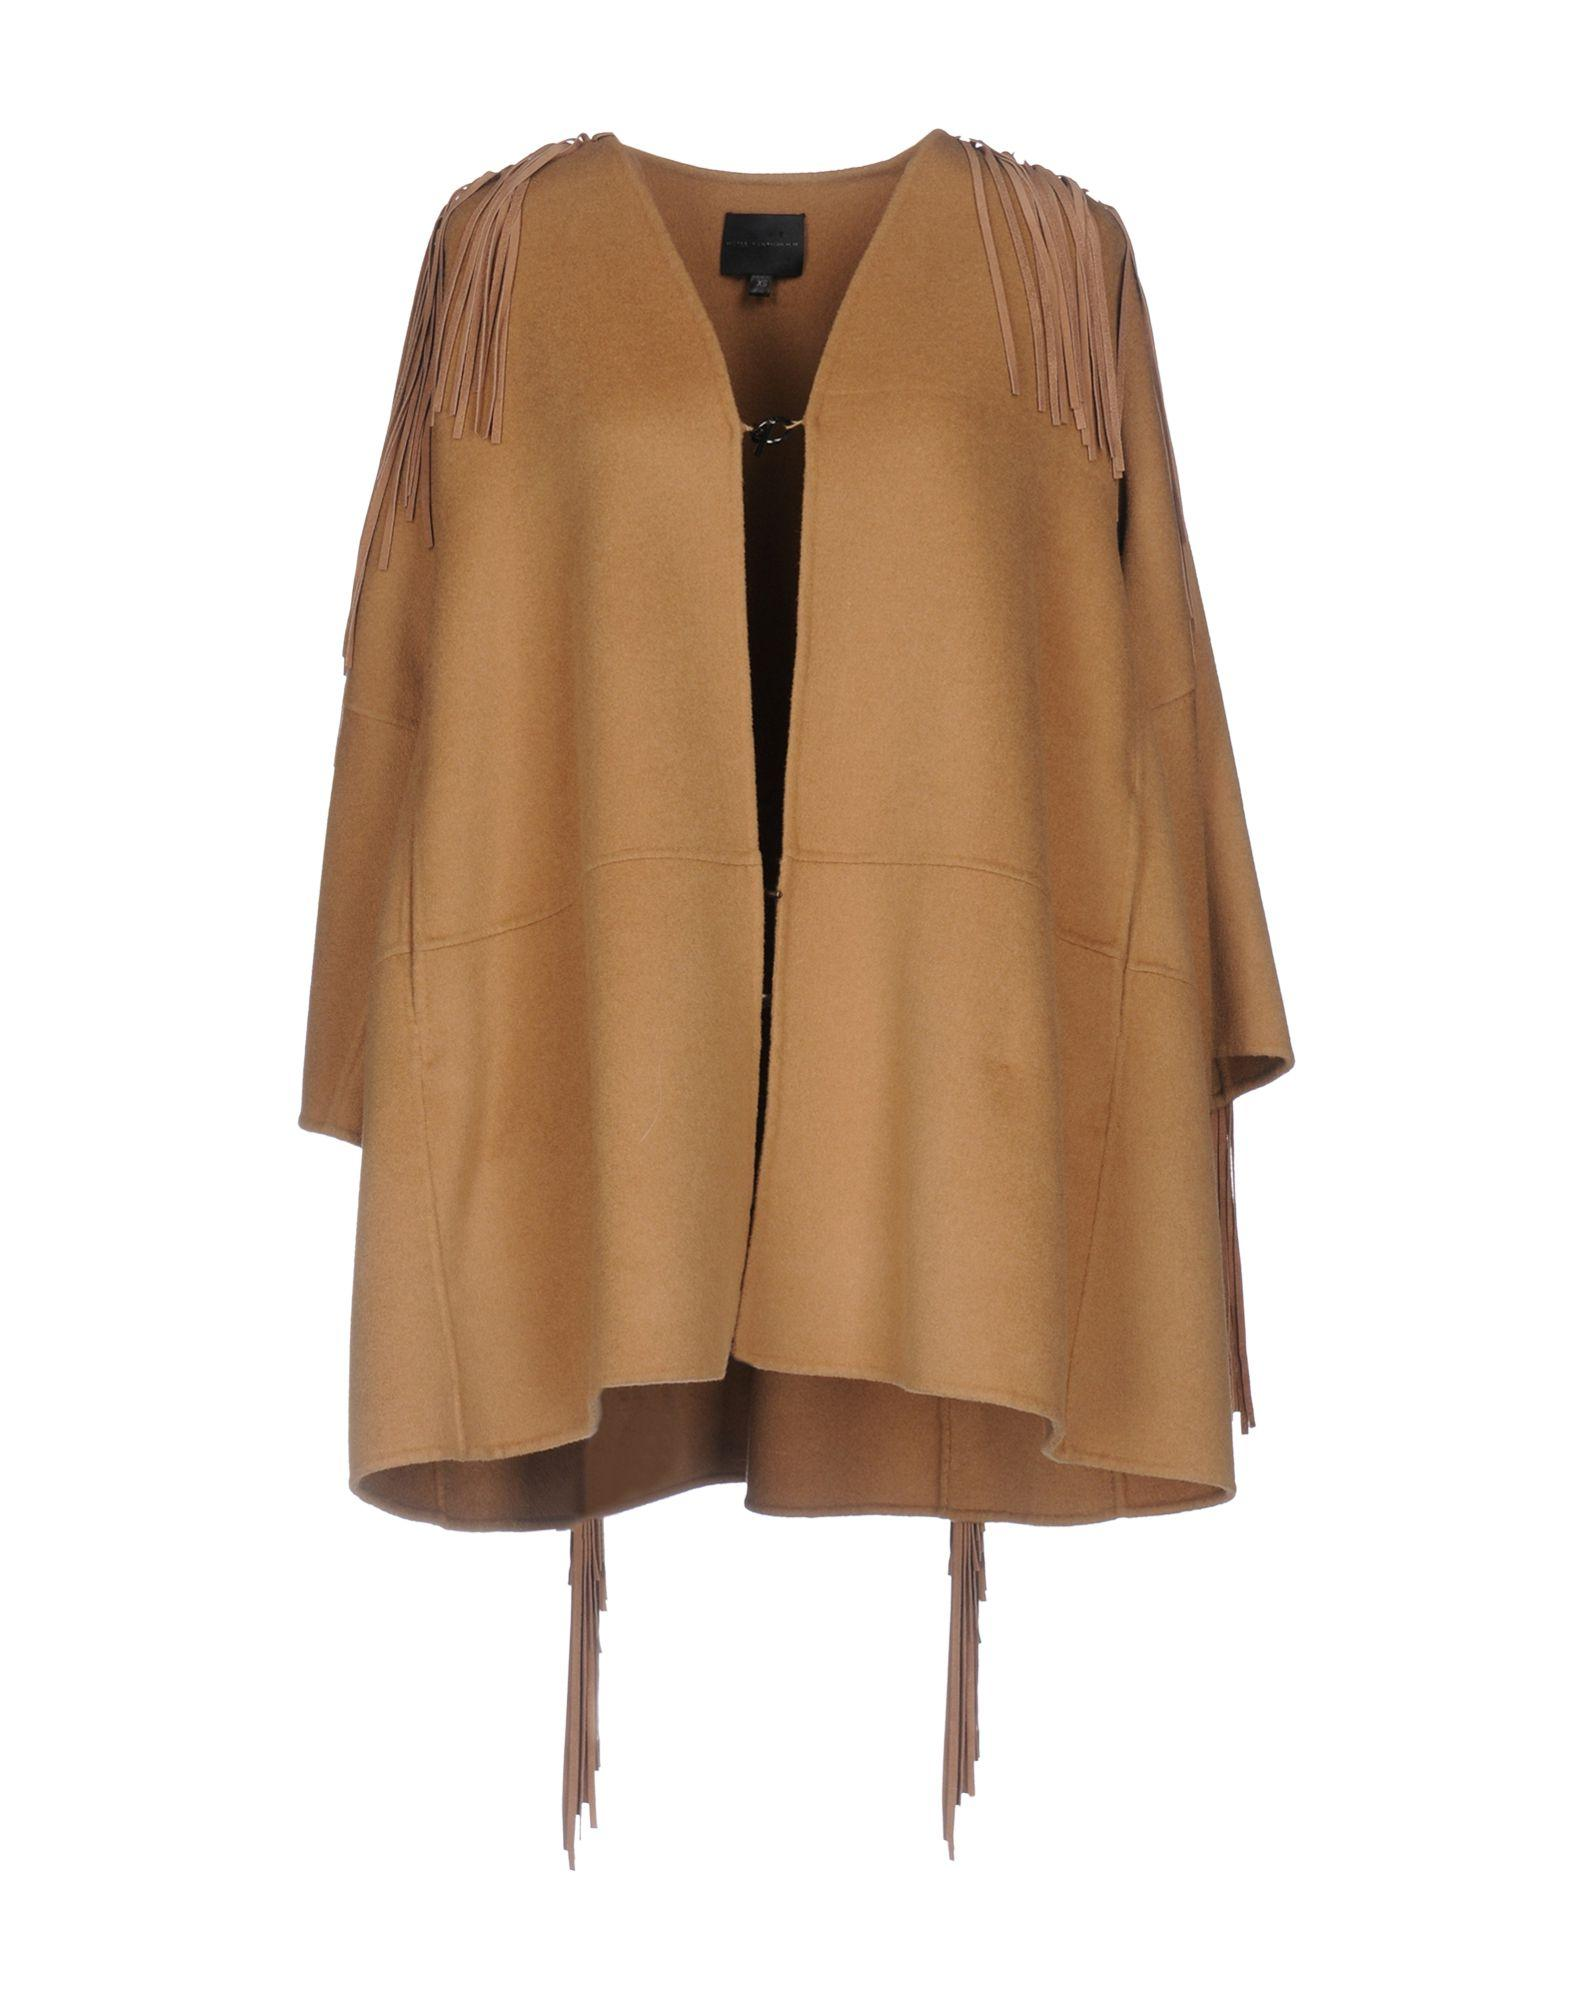 Hotel Particulier Coats In Camel